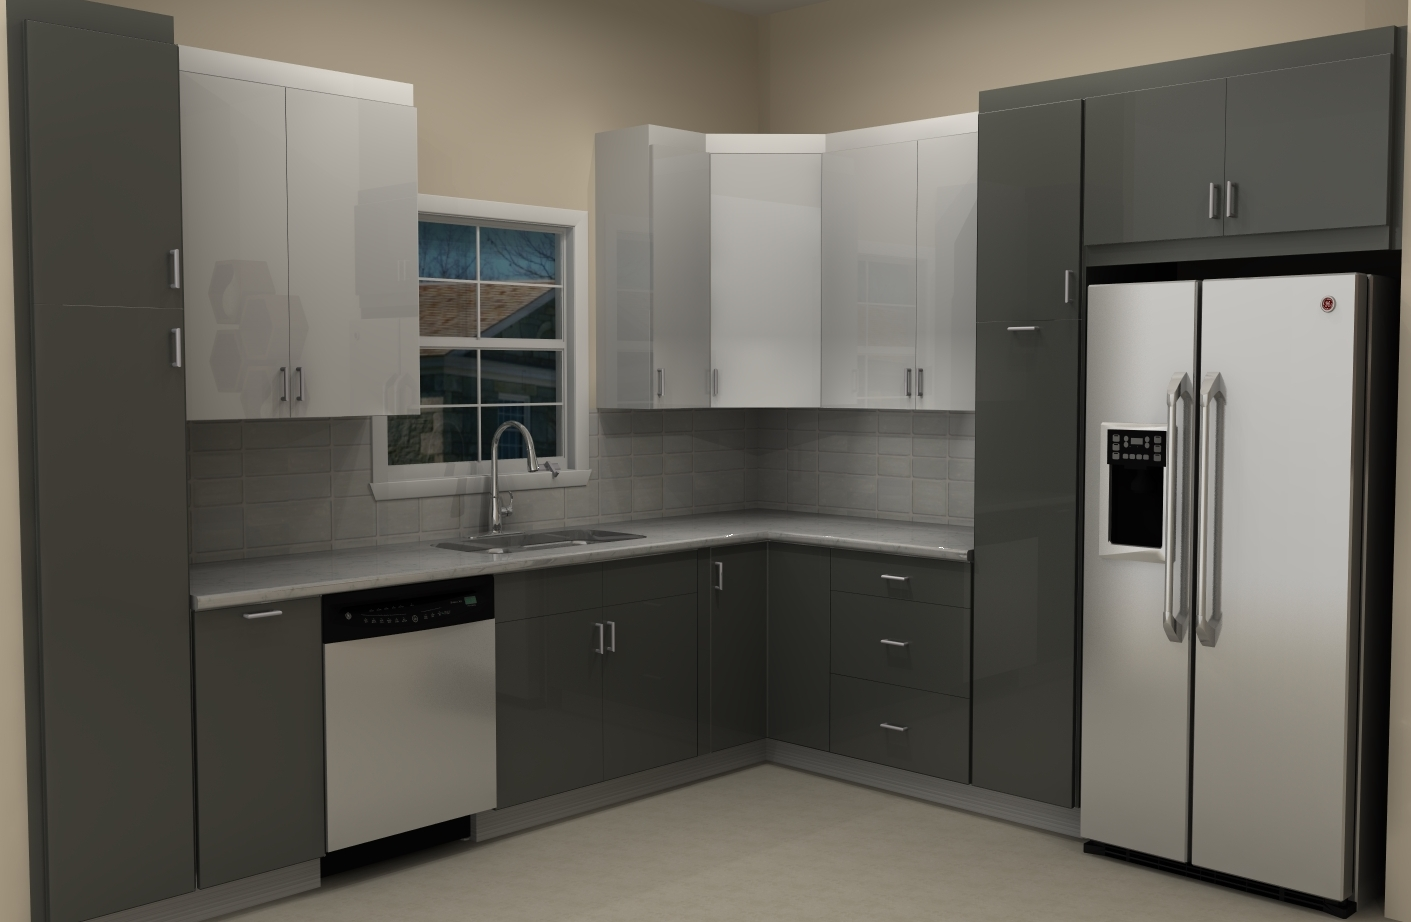 high gloss abstrakt doors for an ikea kitchen remodel ikea kitchen remodel The fridge is now closer to the sink with a narrow pull out pantry for